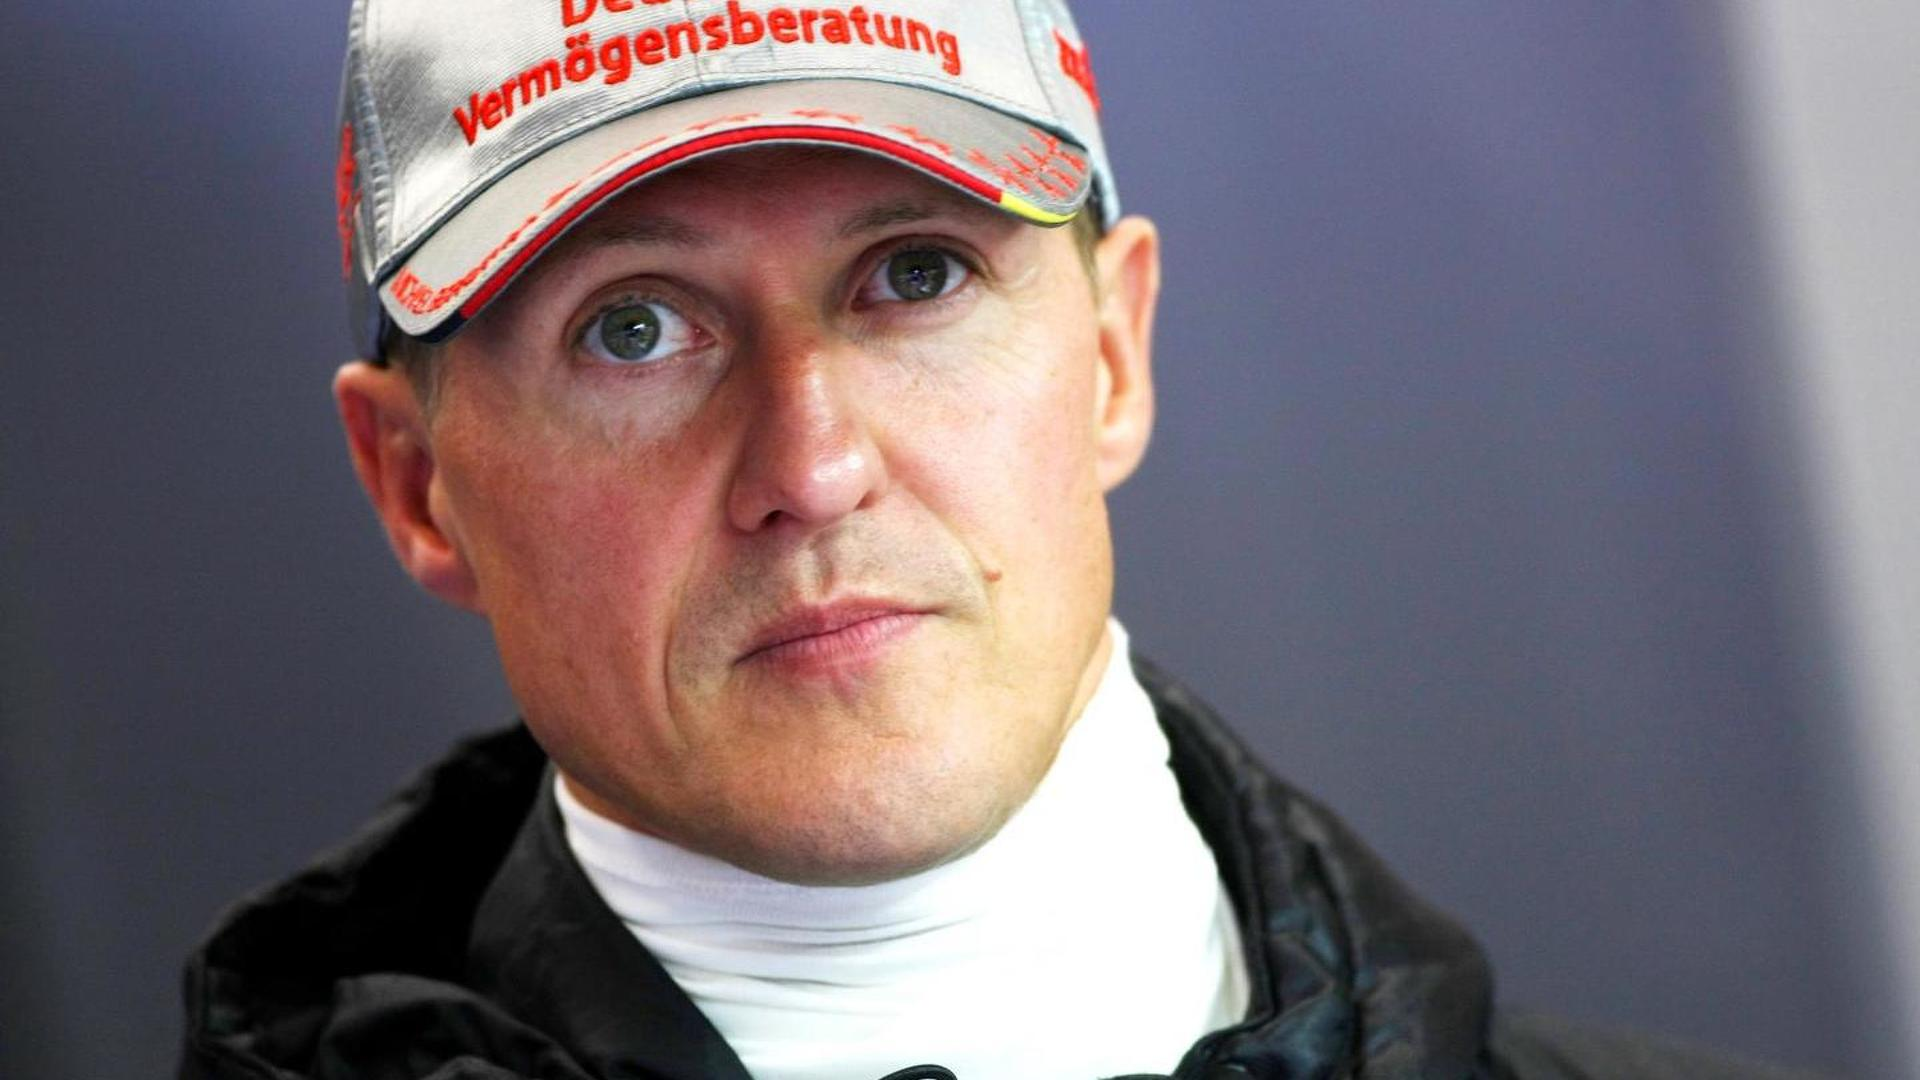 Schumacher could return home by Christmas